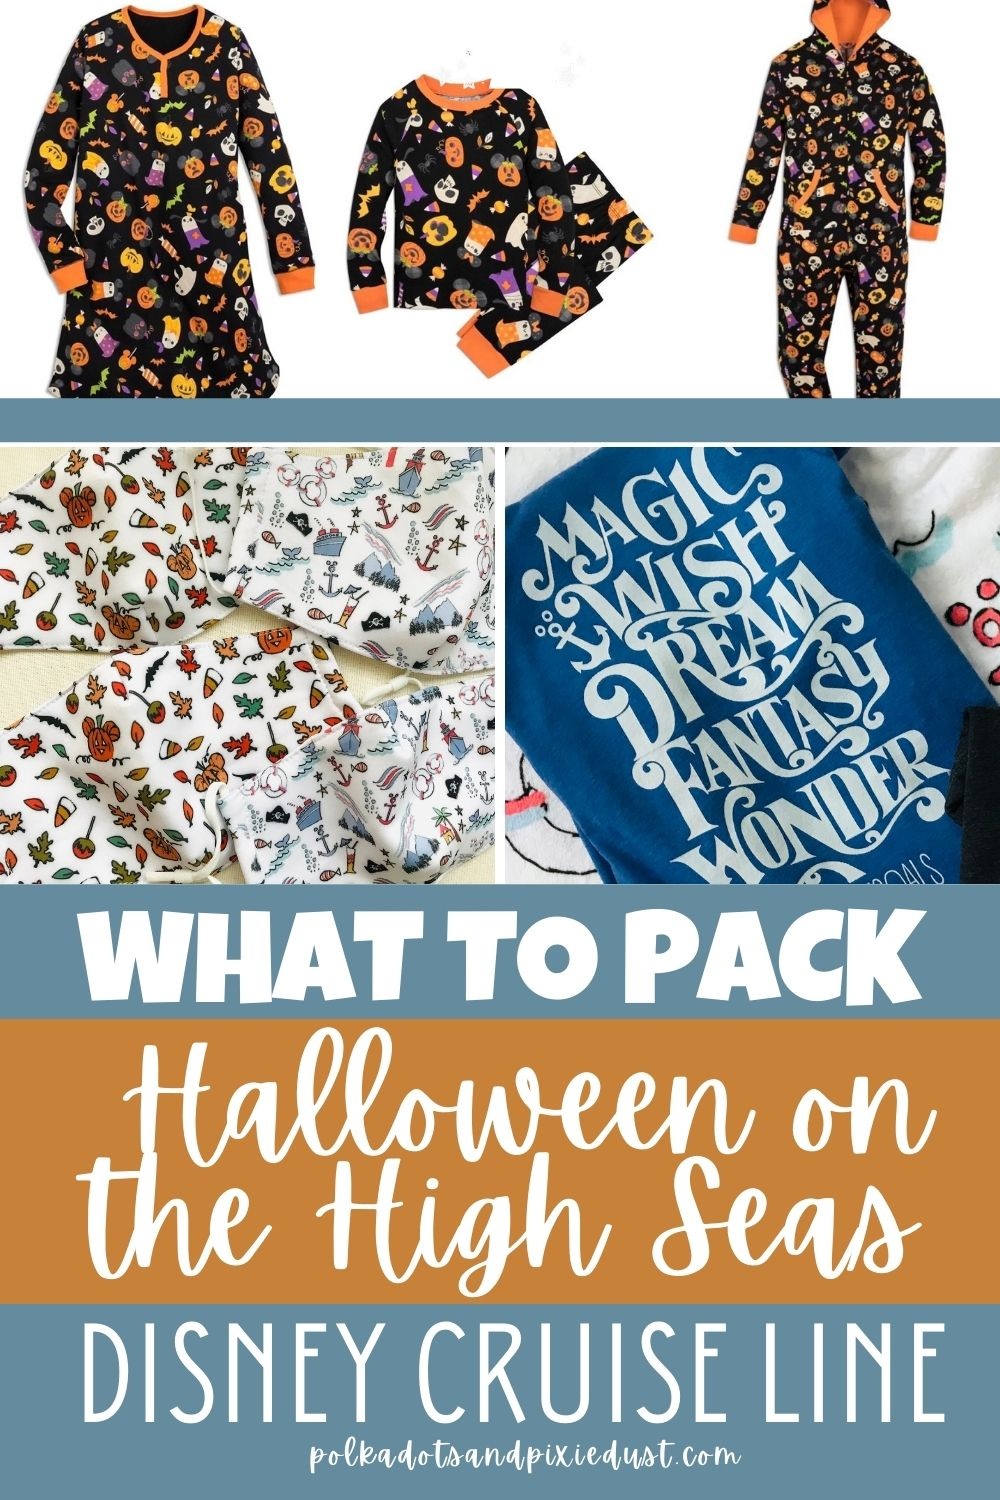 Taking a Halloween on the High Seas Disney Halloween Cruise means packing a variety of things both fun and festive! #disneyhalloween #disneycruise #polkadotpixies